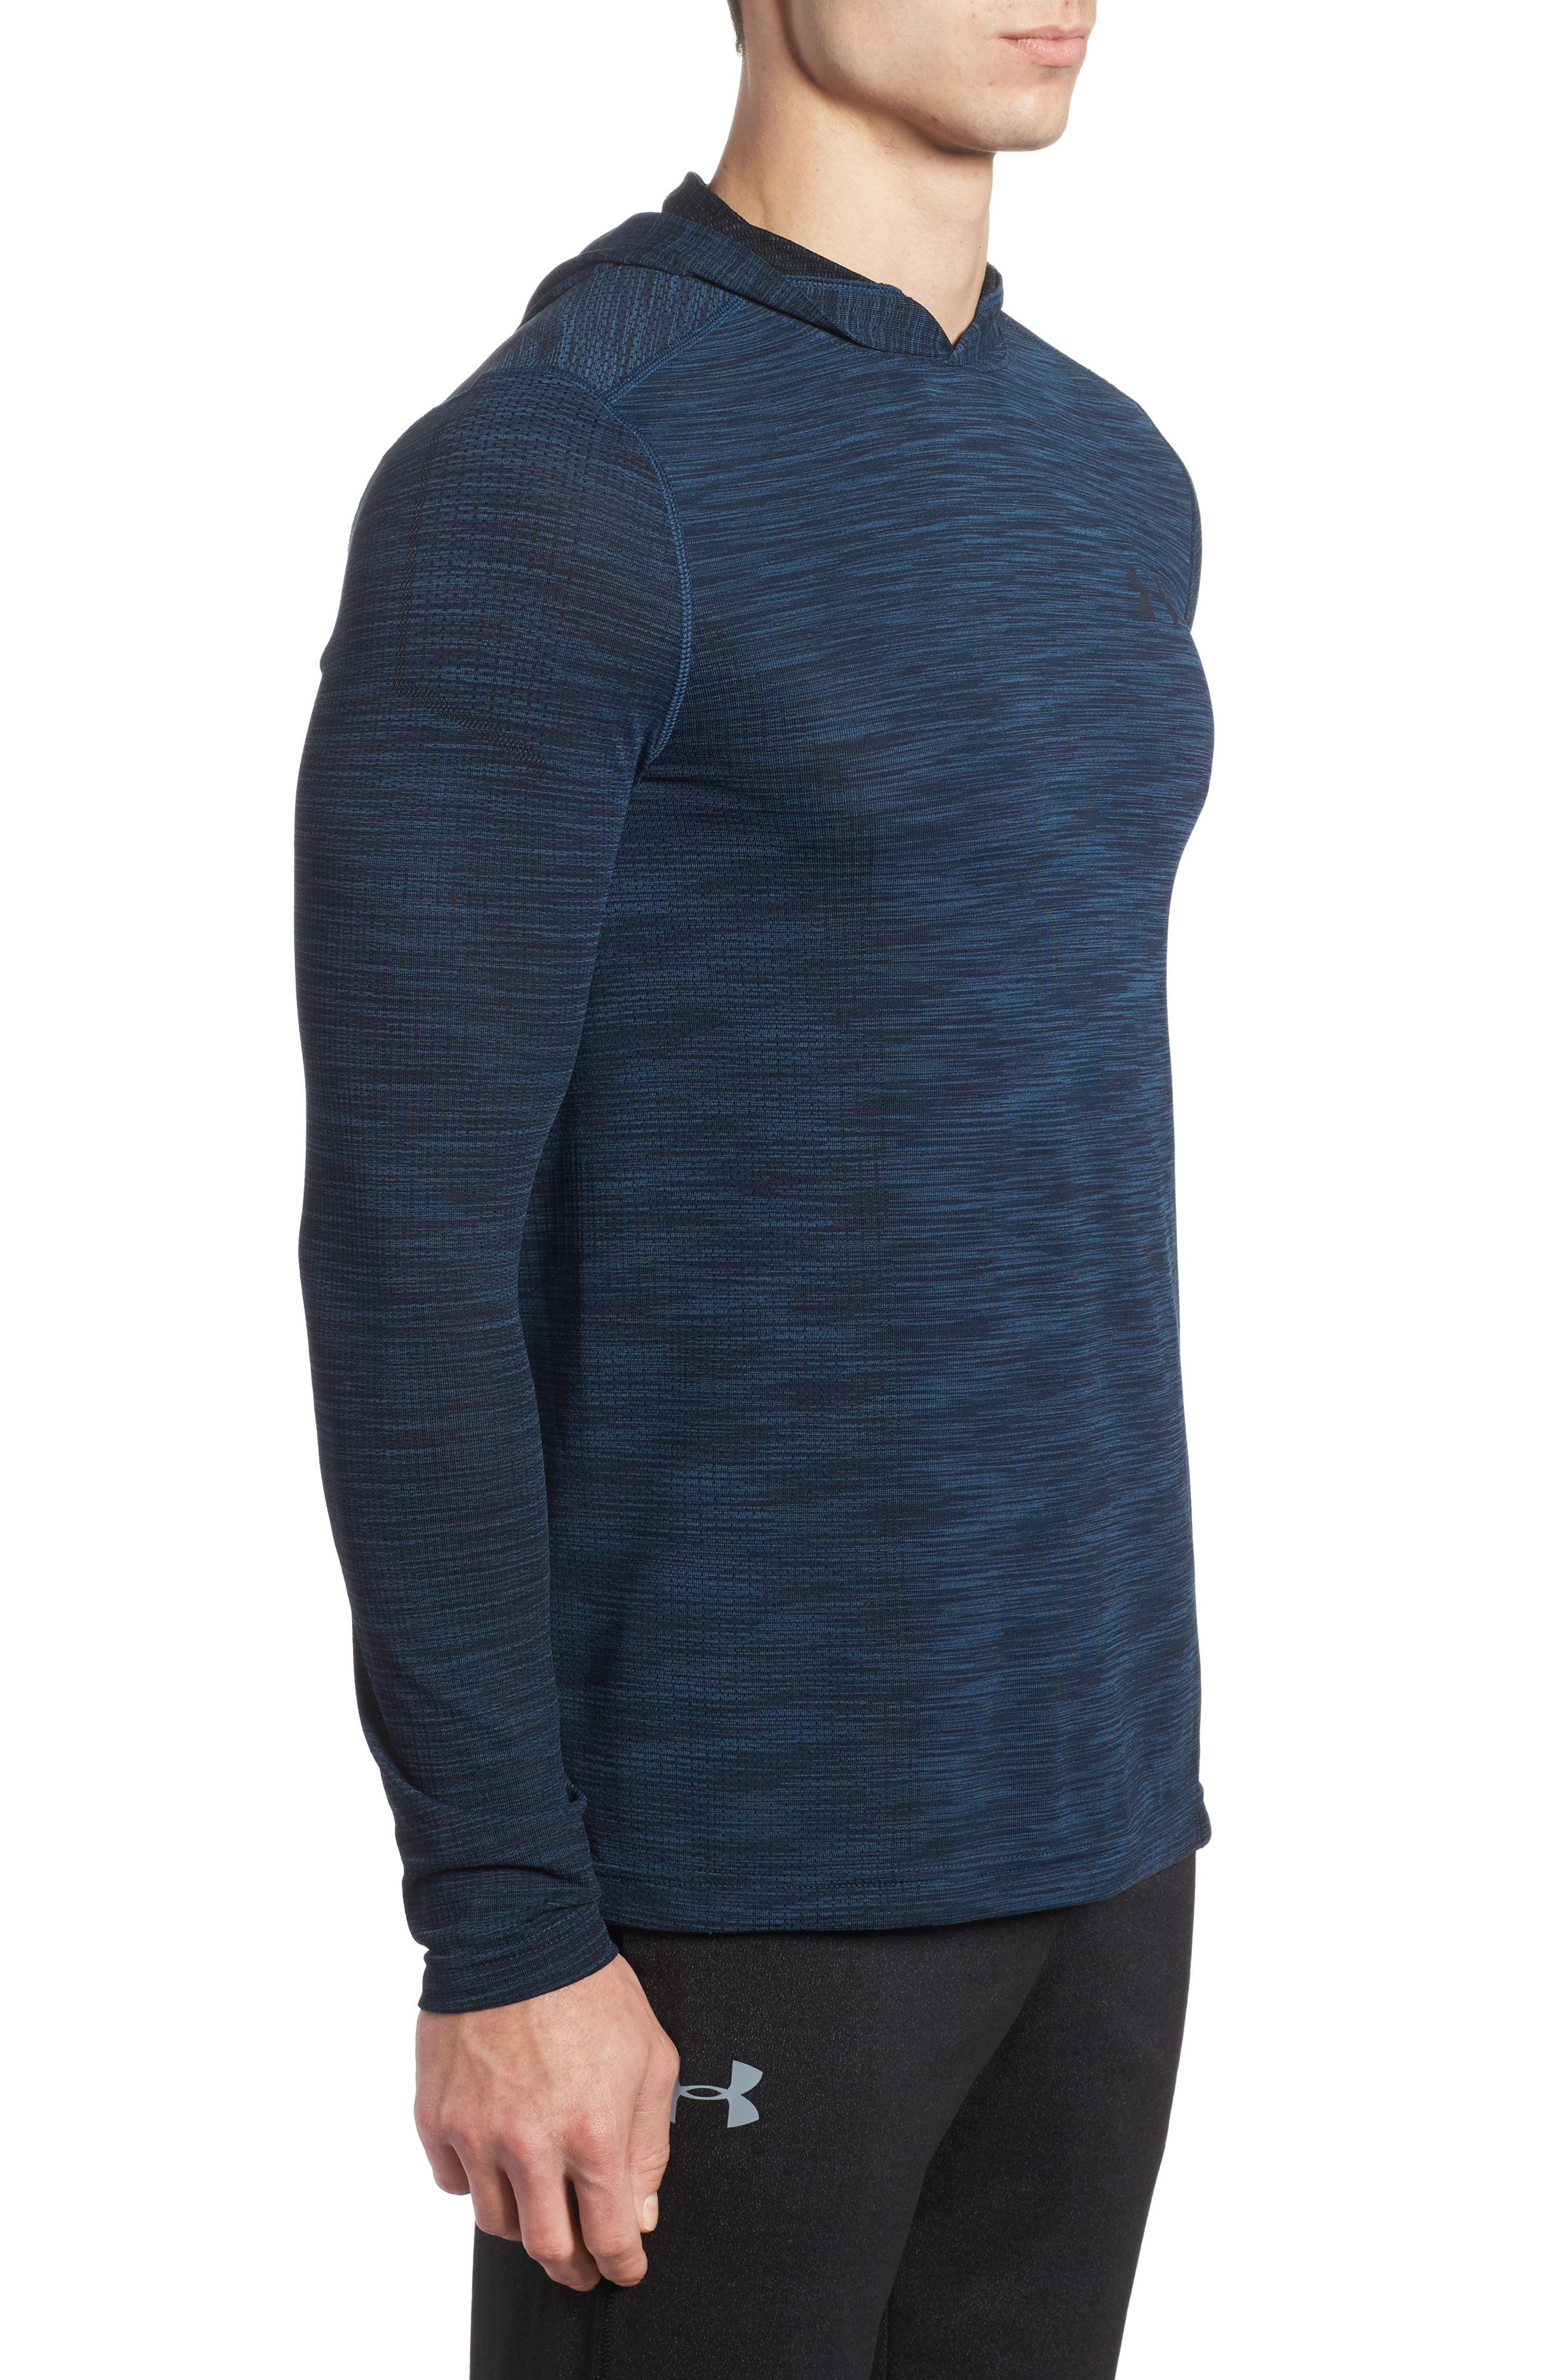 Threadbone Fitted Seamless Hoodie,                             Alternate thumbnail 3, color,                             True Ink/ Anthracite